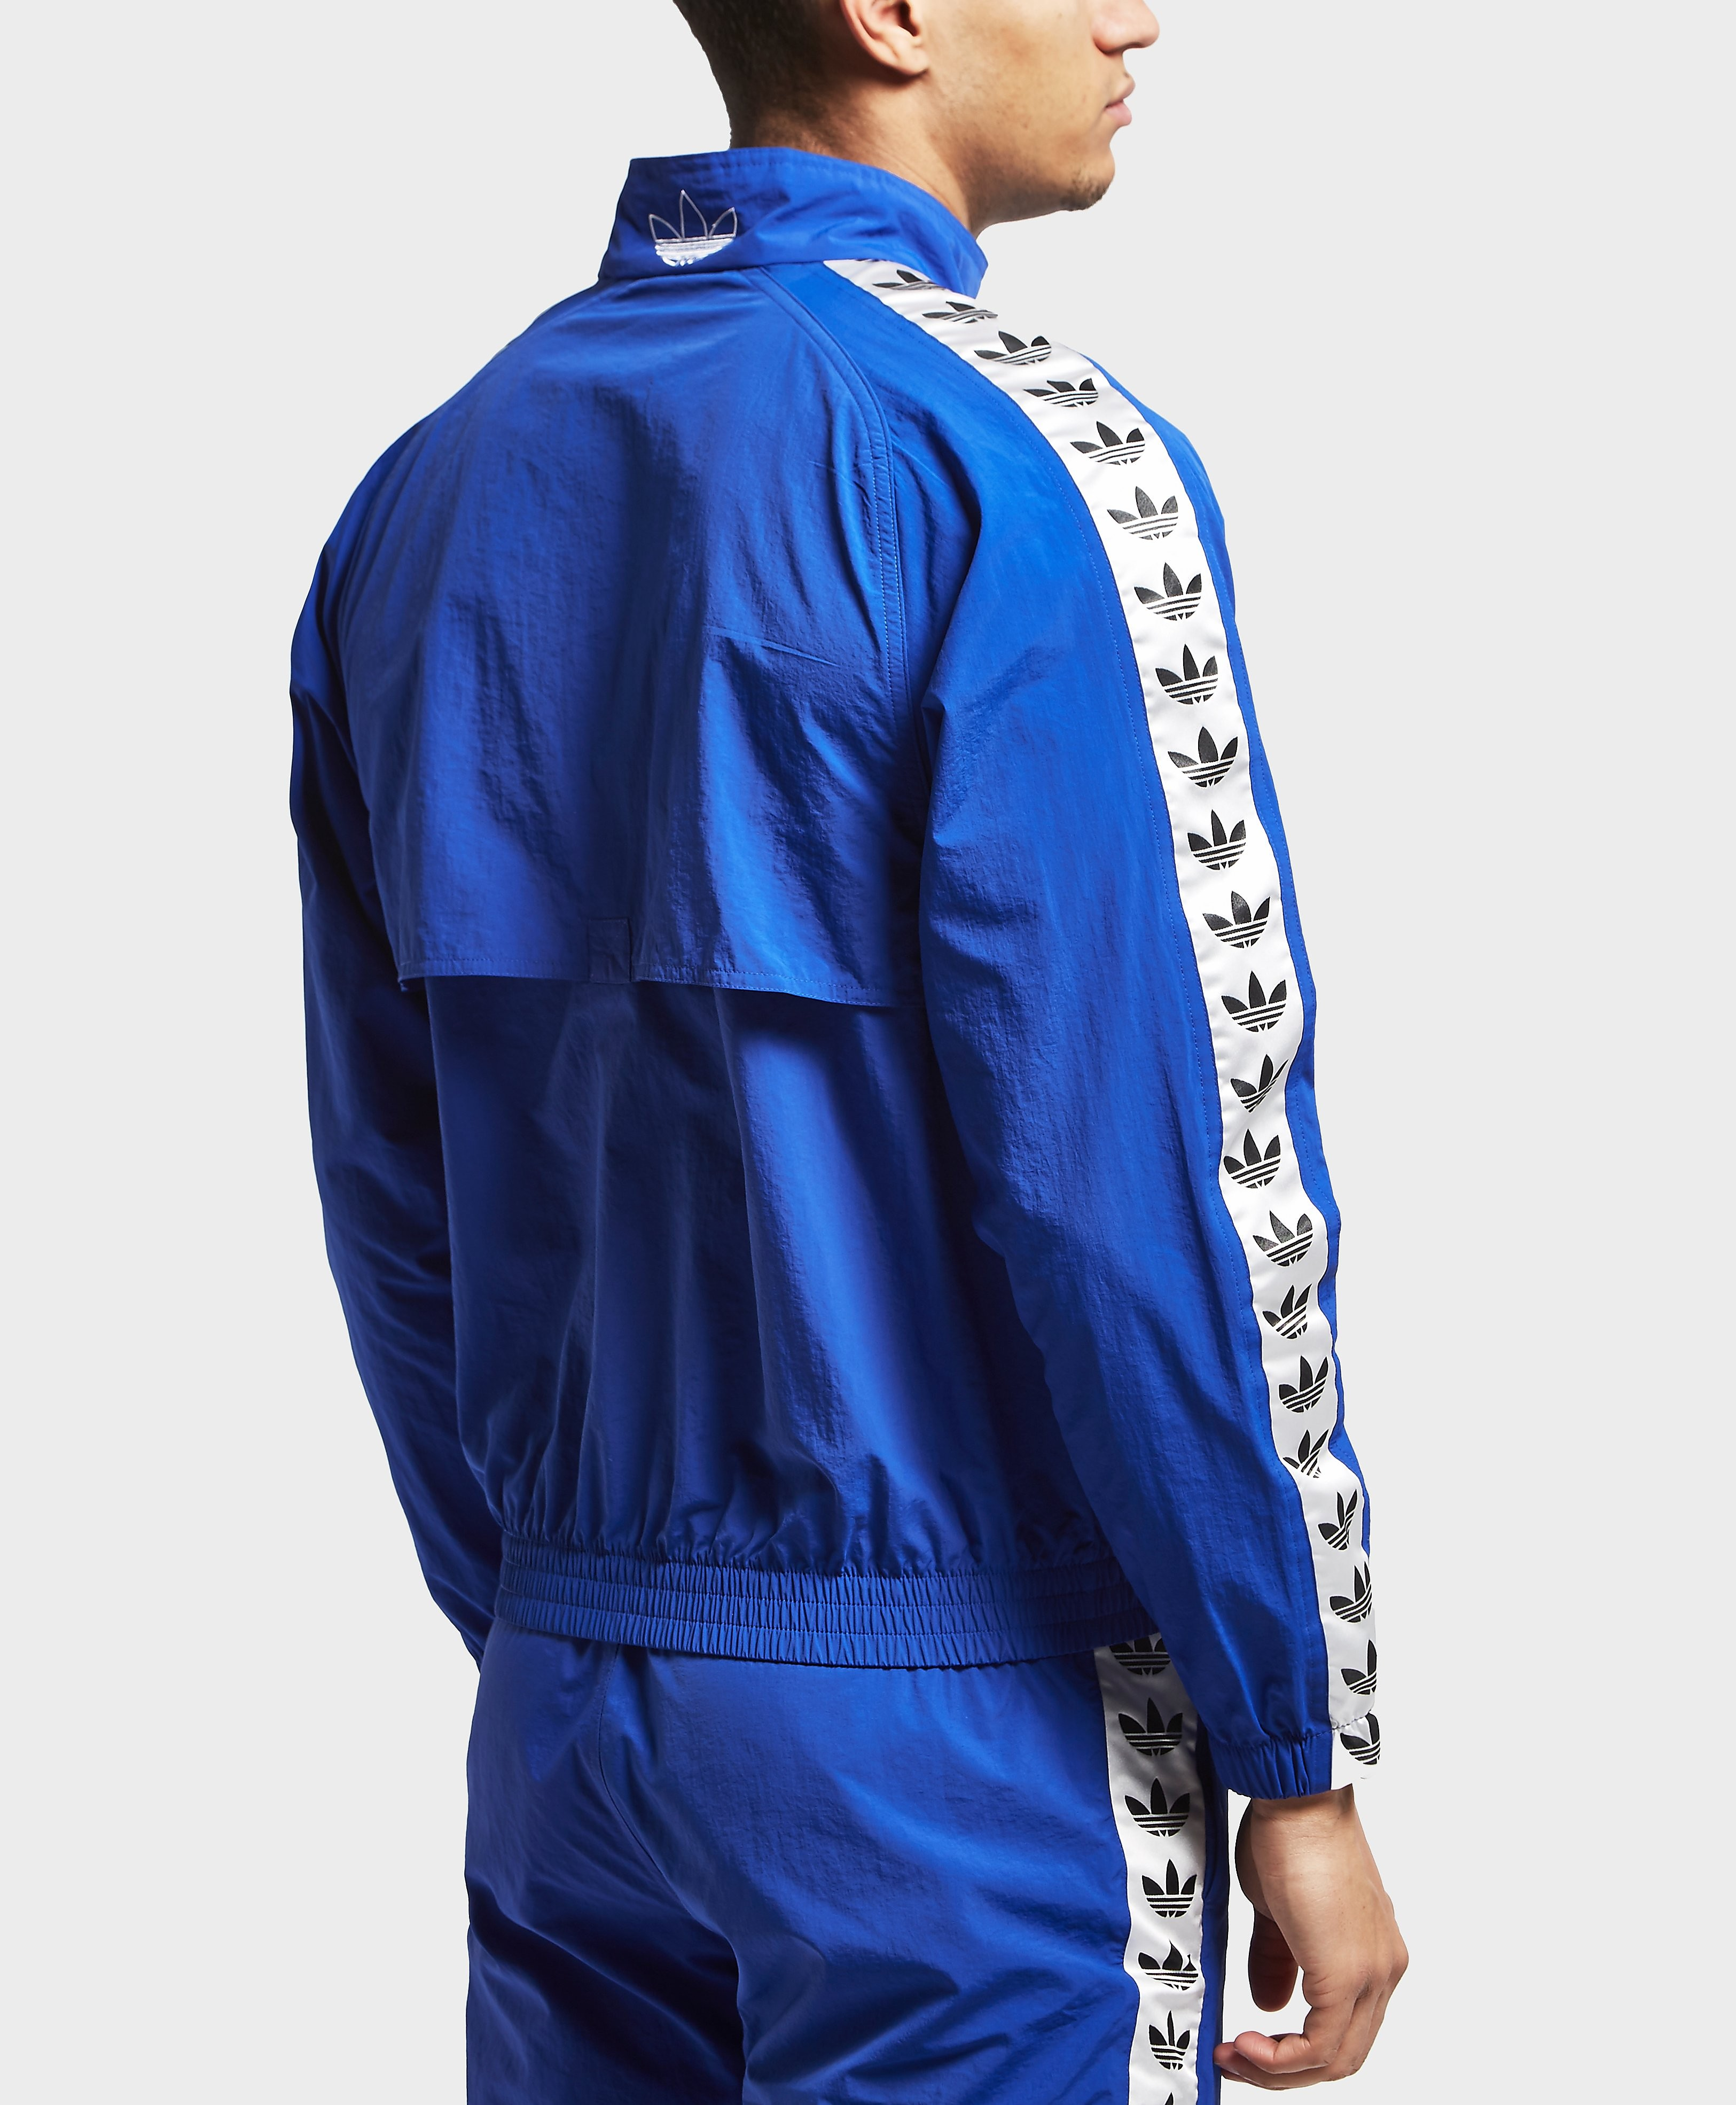 adidas Originals Tape Track Top